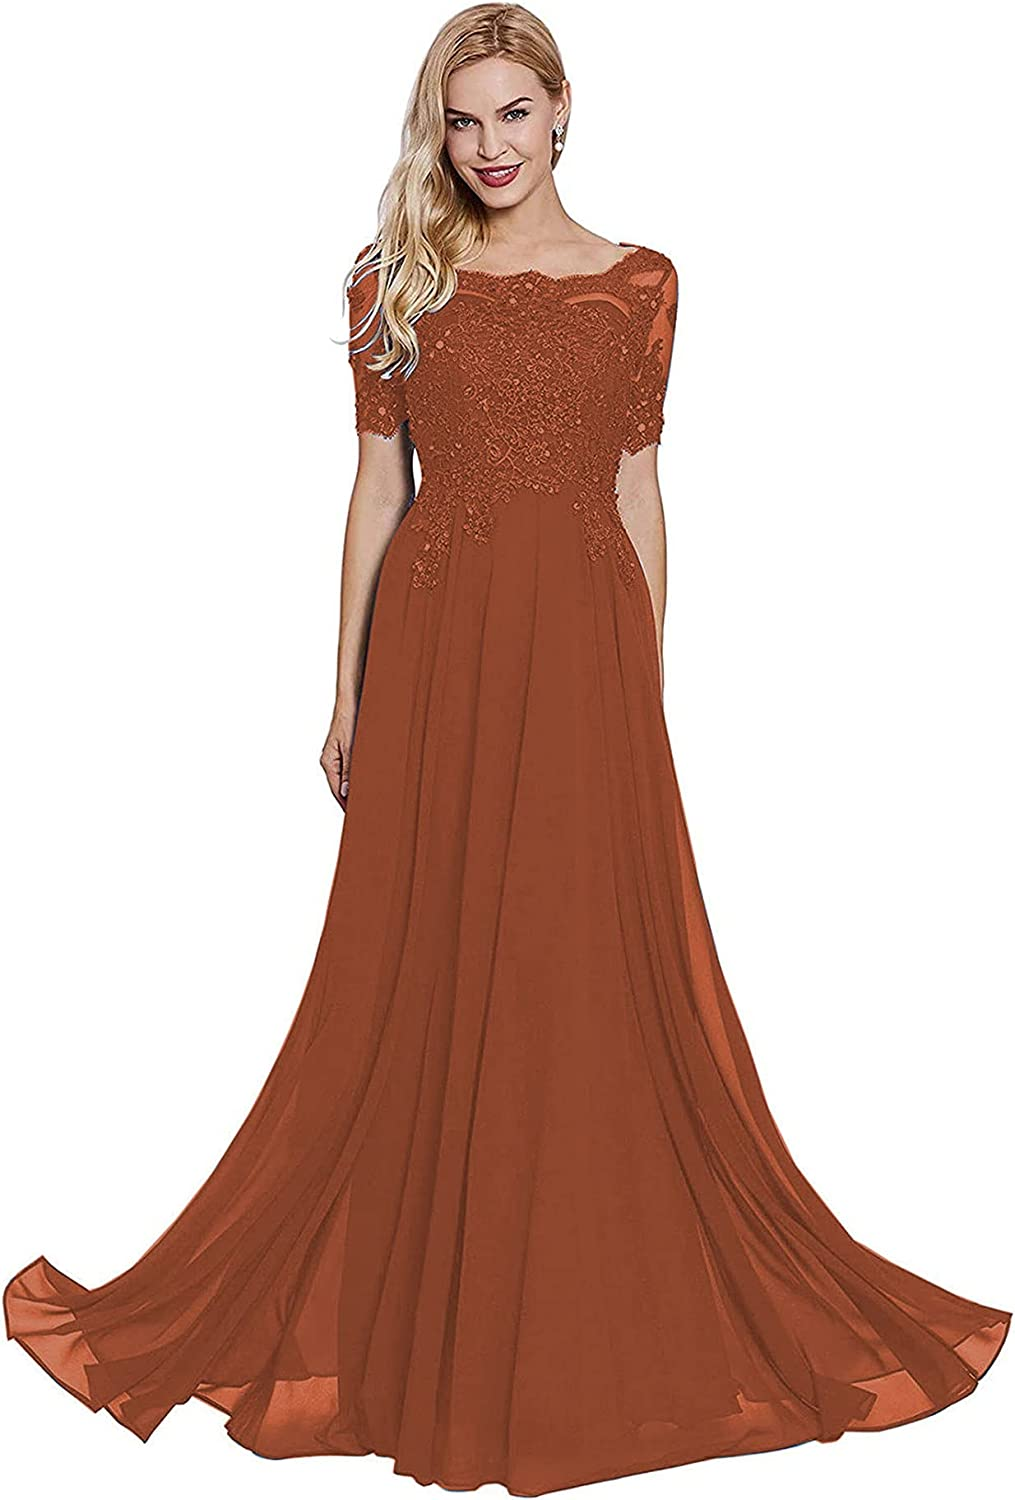 Women's Bateau Neck Lace Applique Mother of The Bride Dress with Sleeves Chiffon Formal Evening Gown